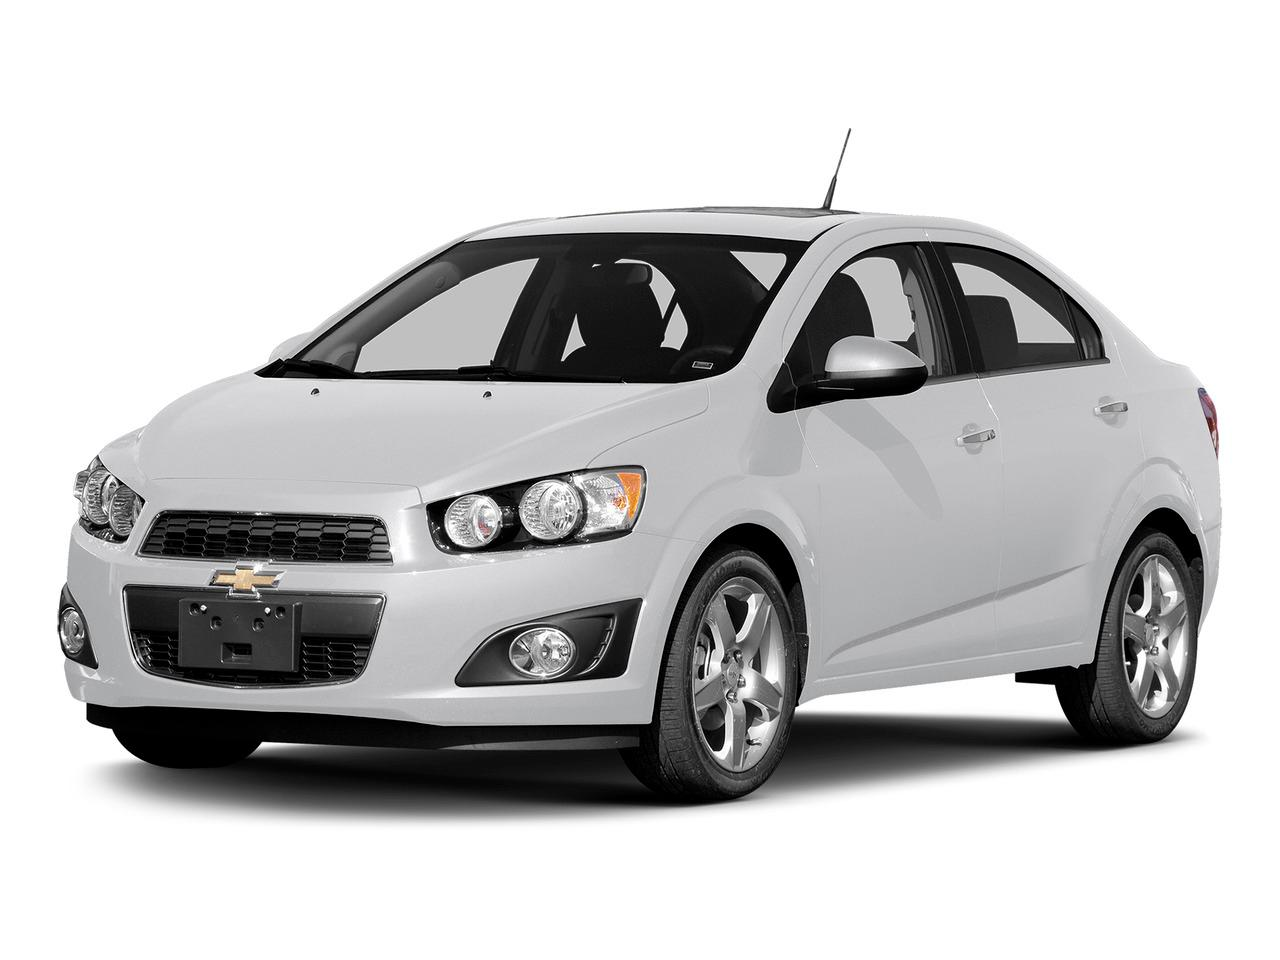 2015 Chevrolet Sonic Vehicle Photo in Colorado Springs, CO 80905